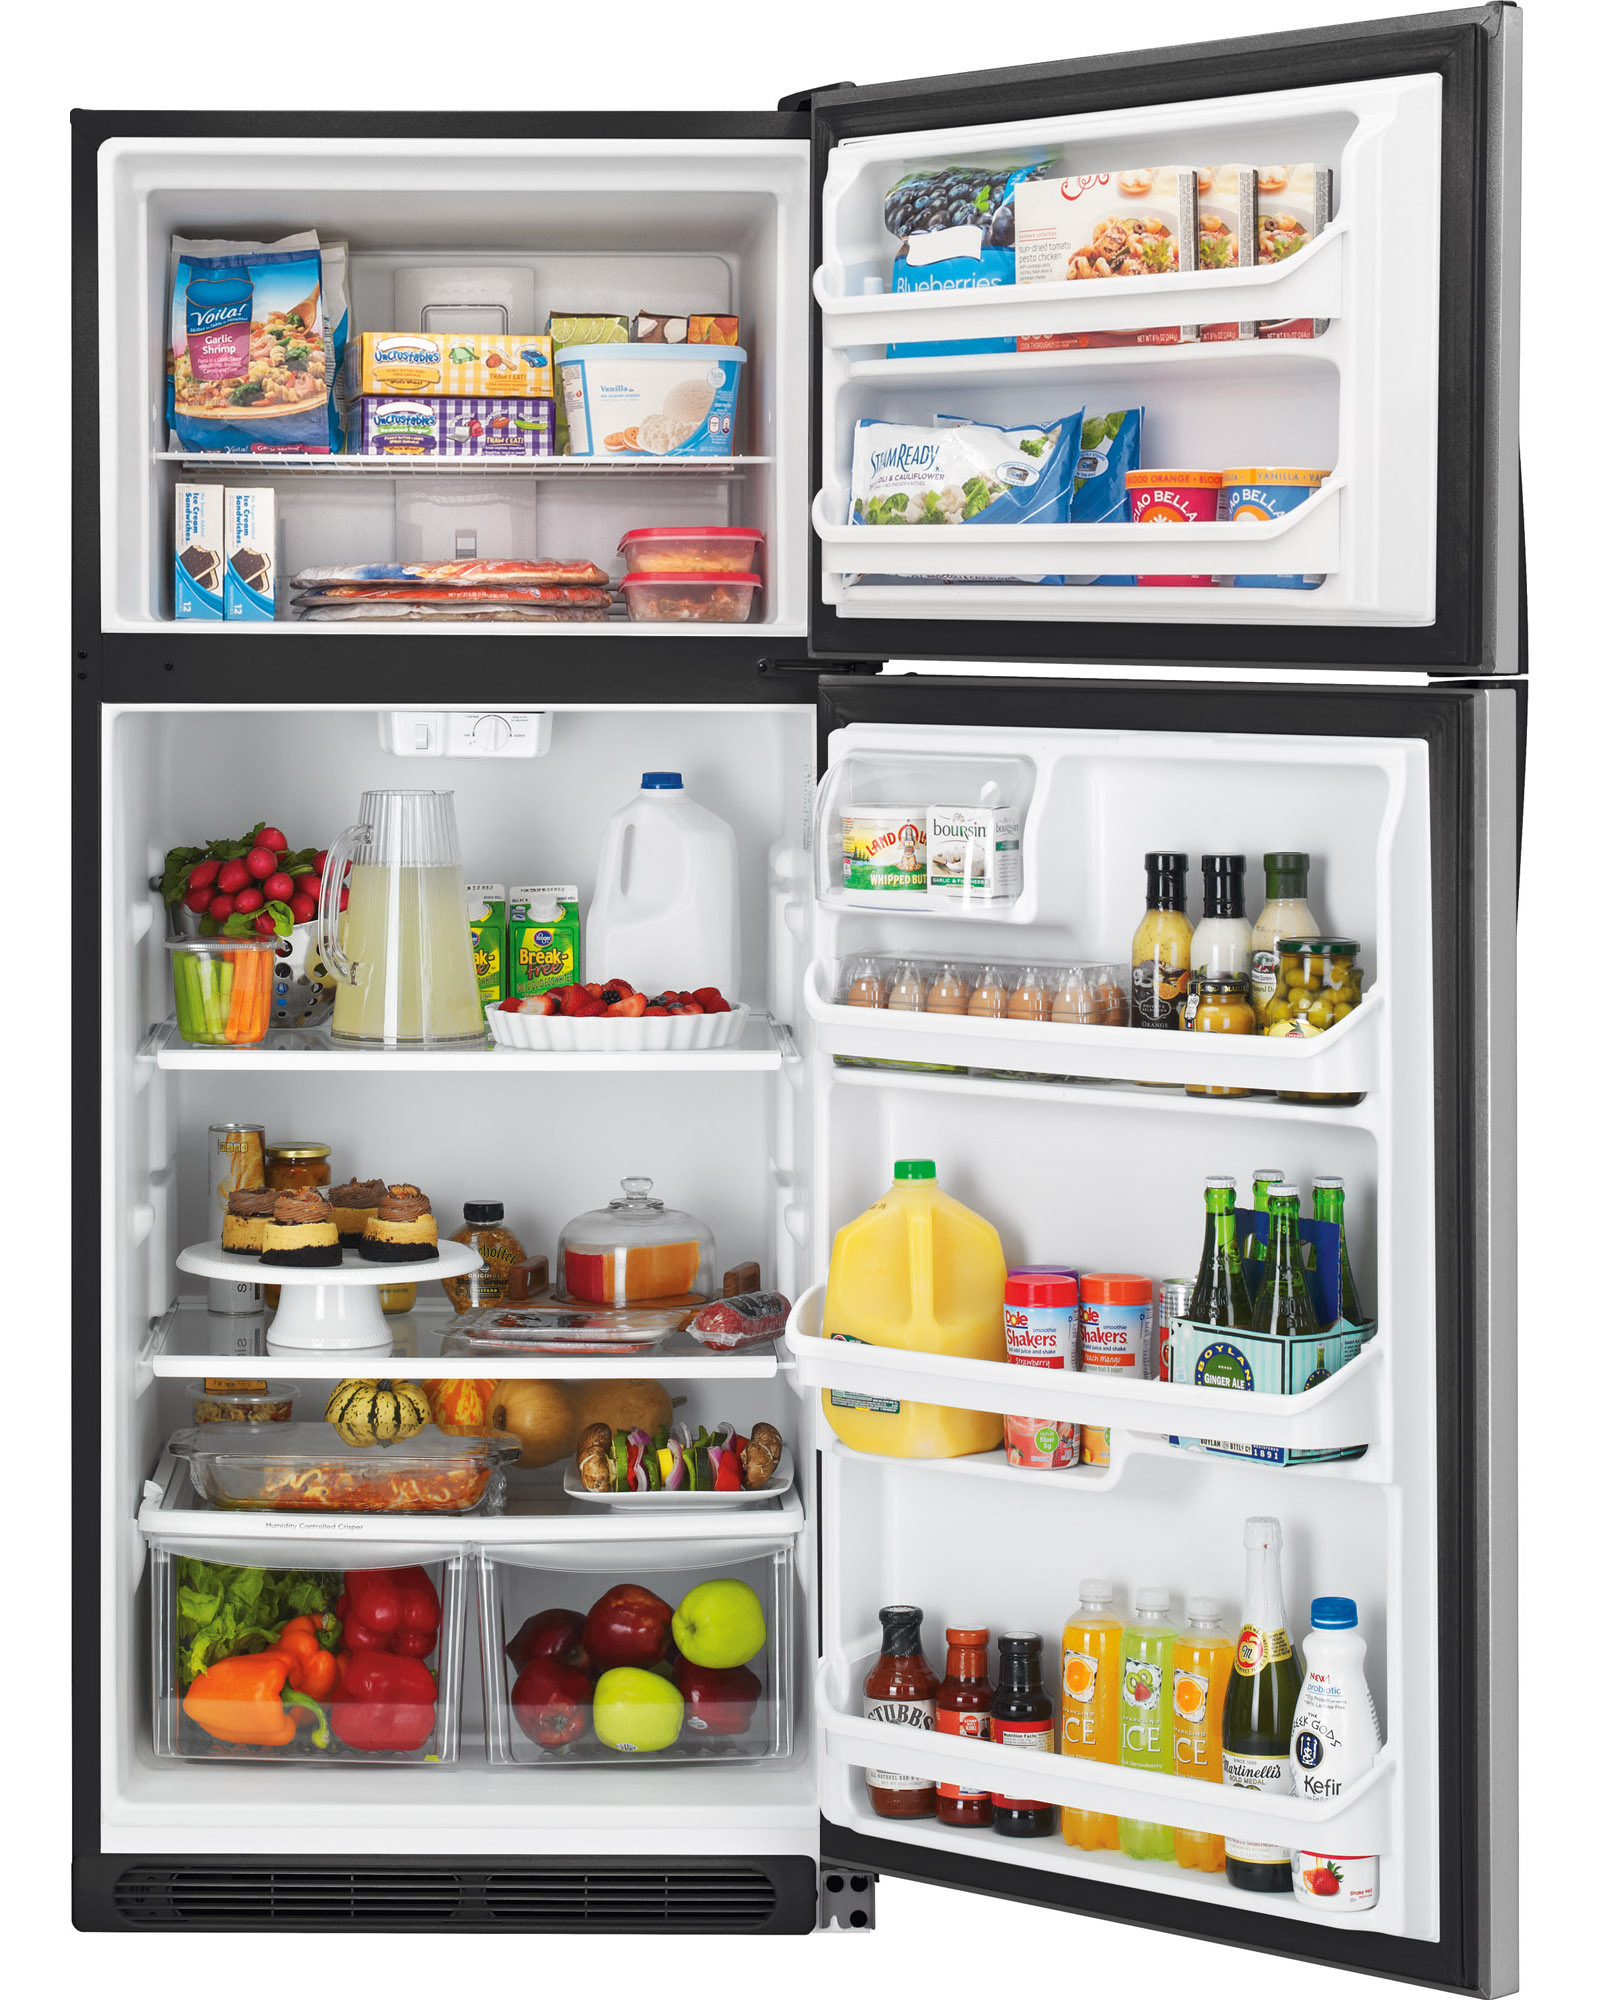 Kenmore 60083 20.4 cu. ft. Top Freezer Refrigerator - Stainless Steel